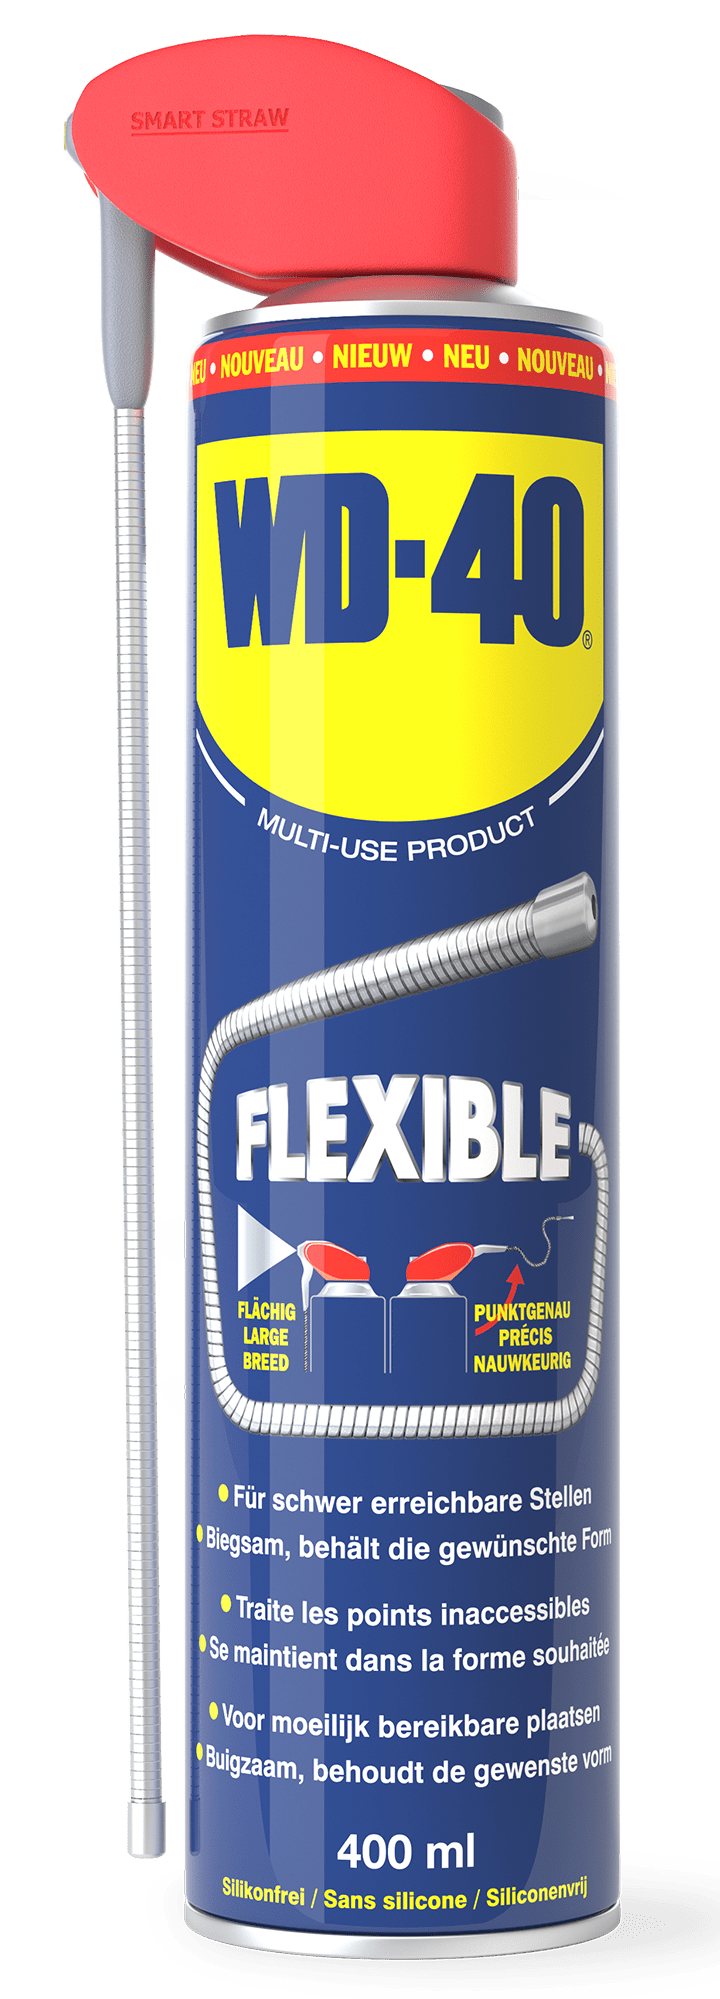 wd40 flexiblestraw400ml benelux transparent